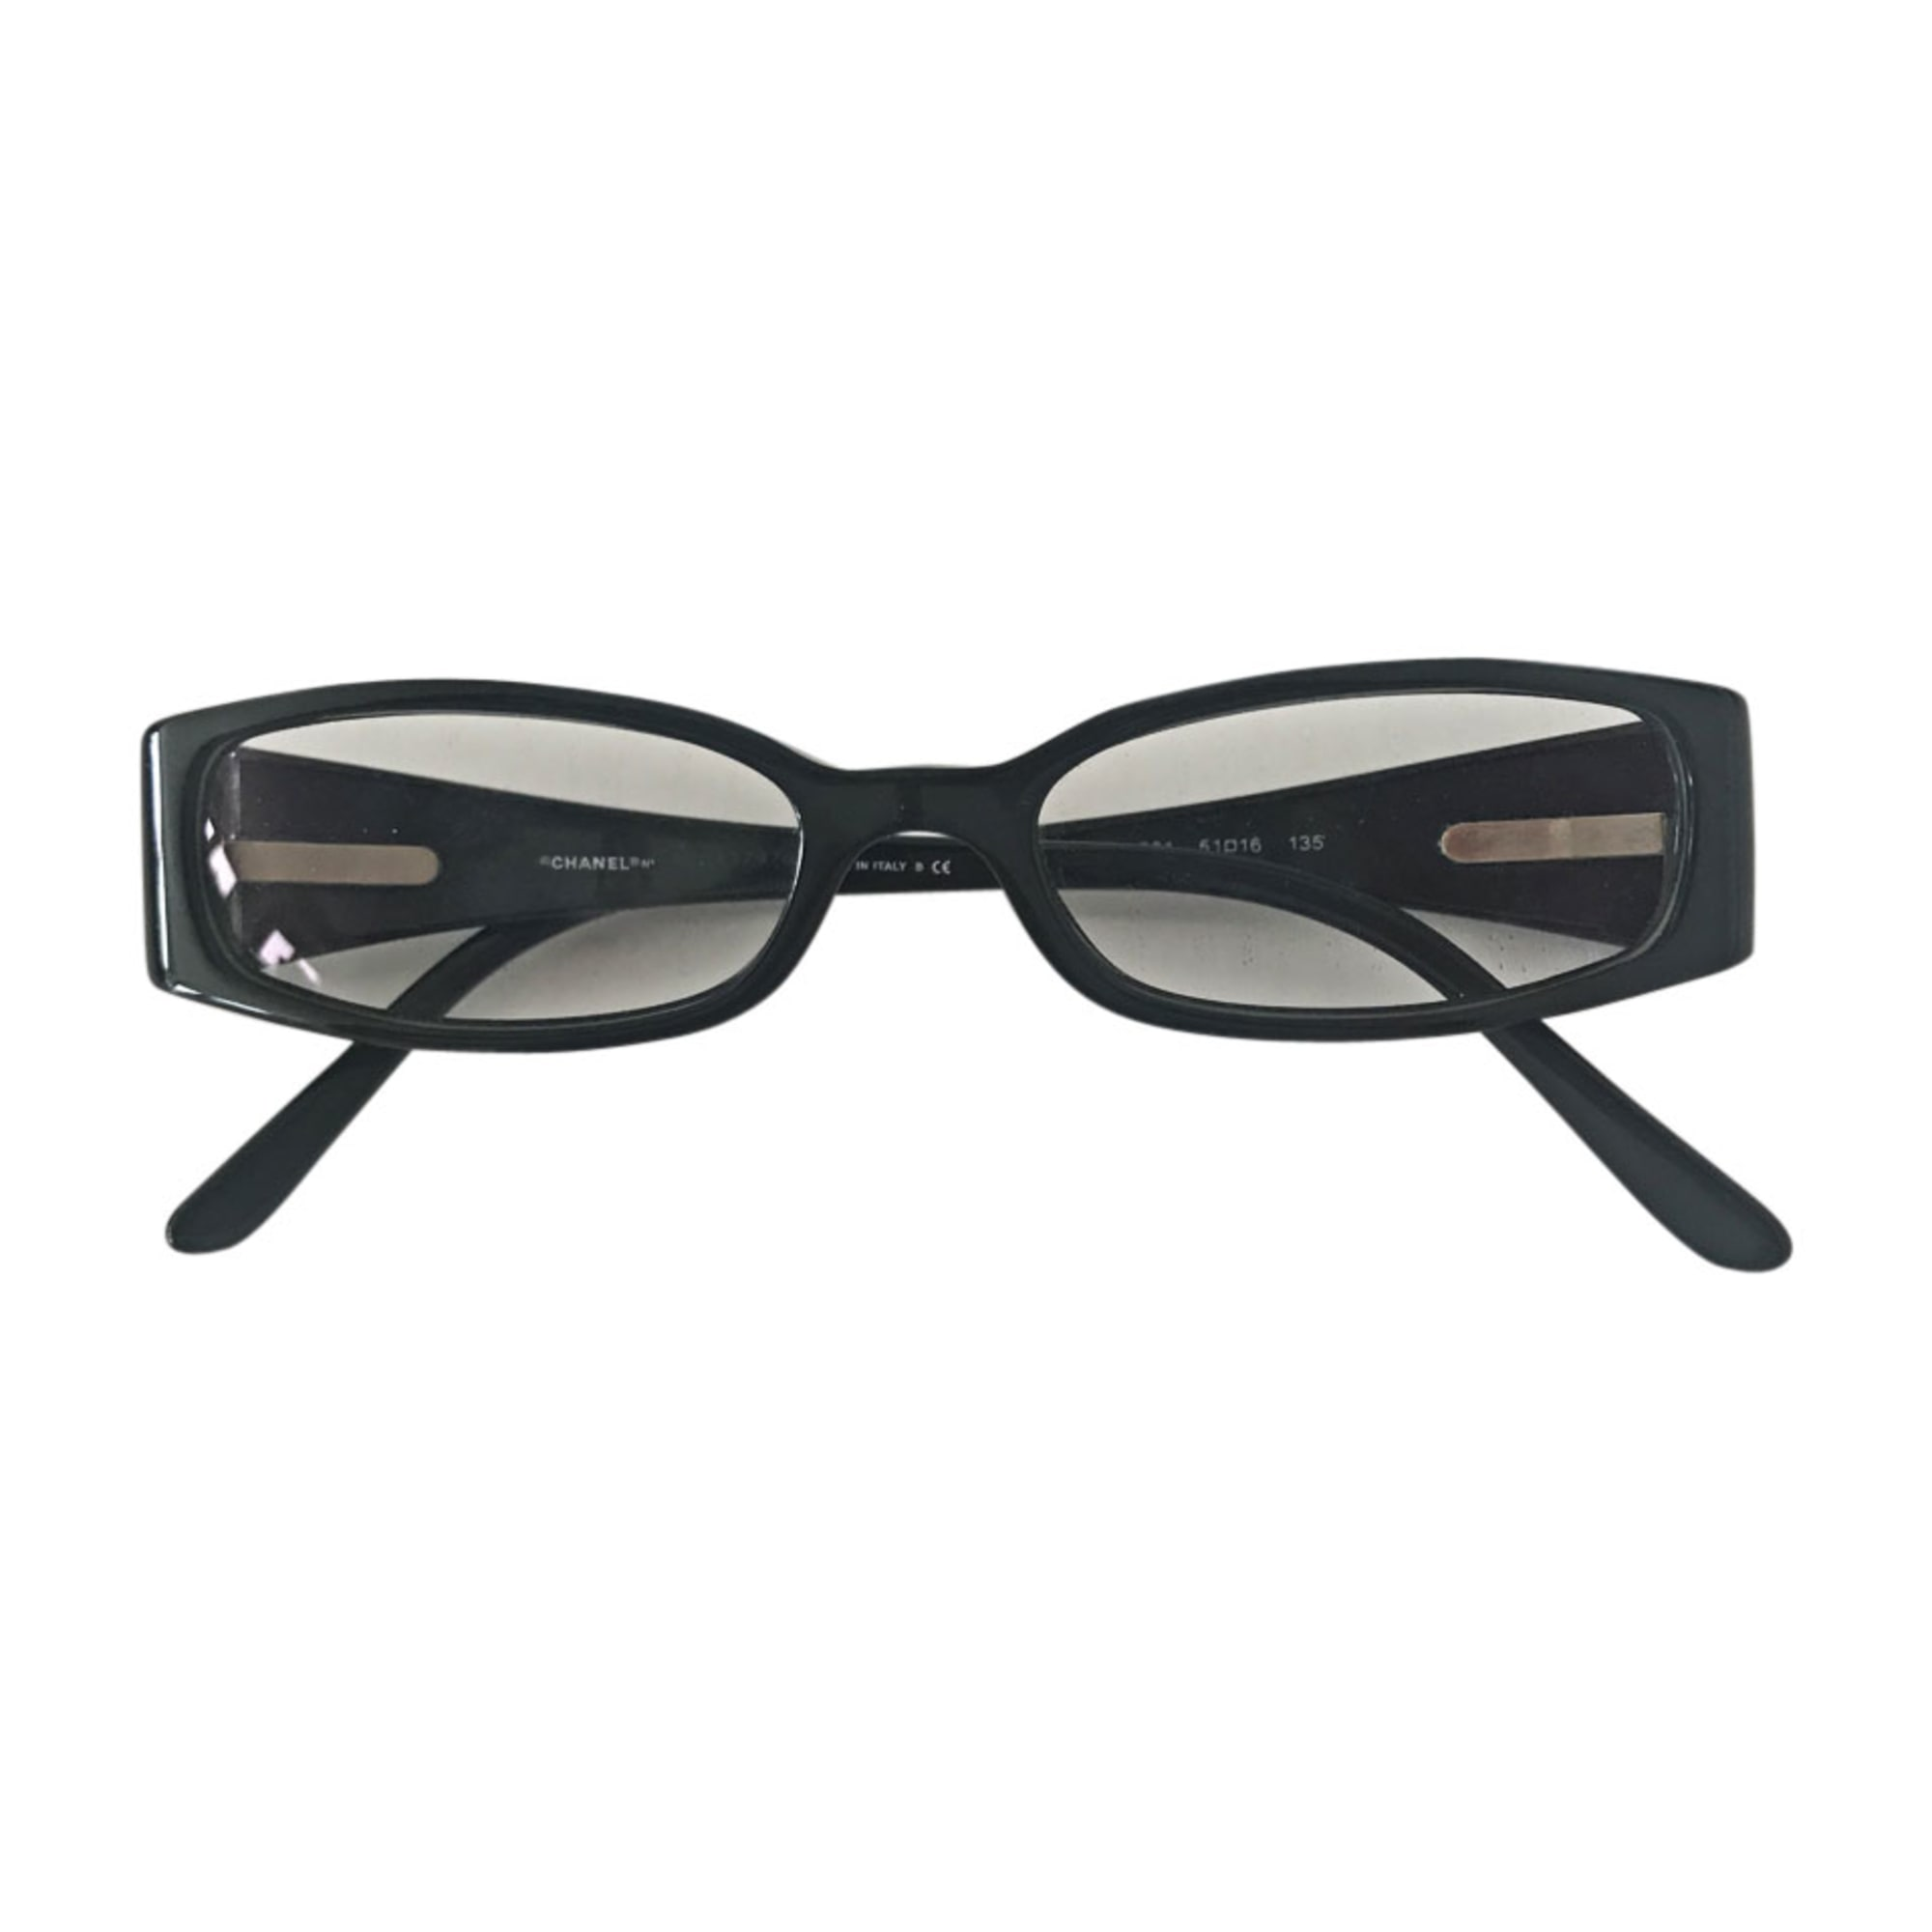 7de565aa3b Eyeglass Frames CHANEL black - 7739309